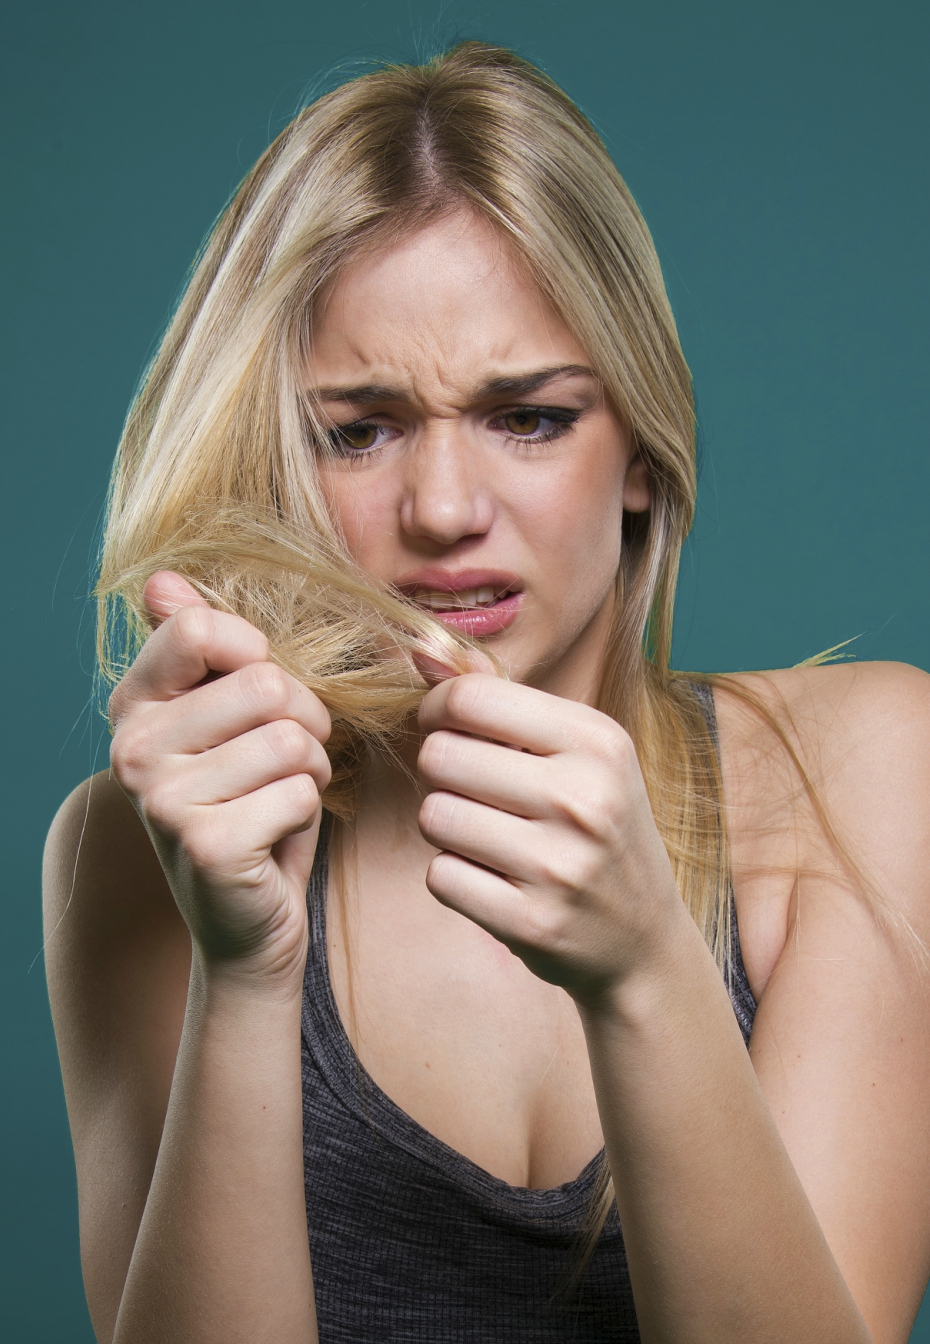 blonde girl seems frustrated while looking at hair